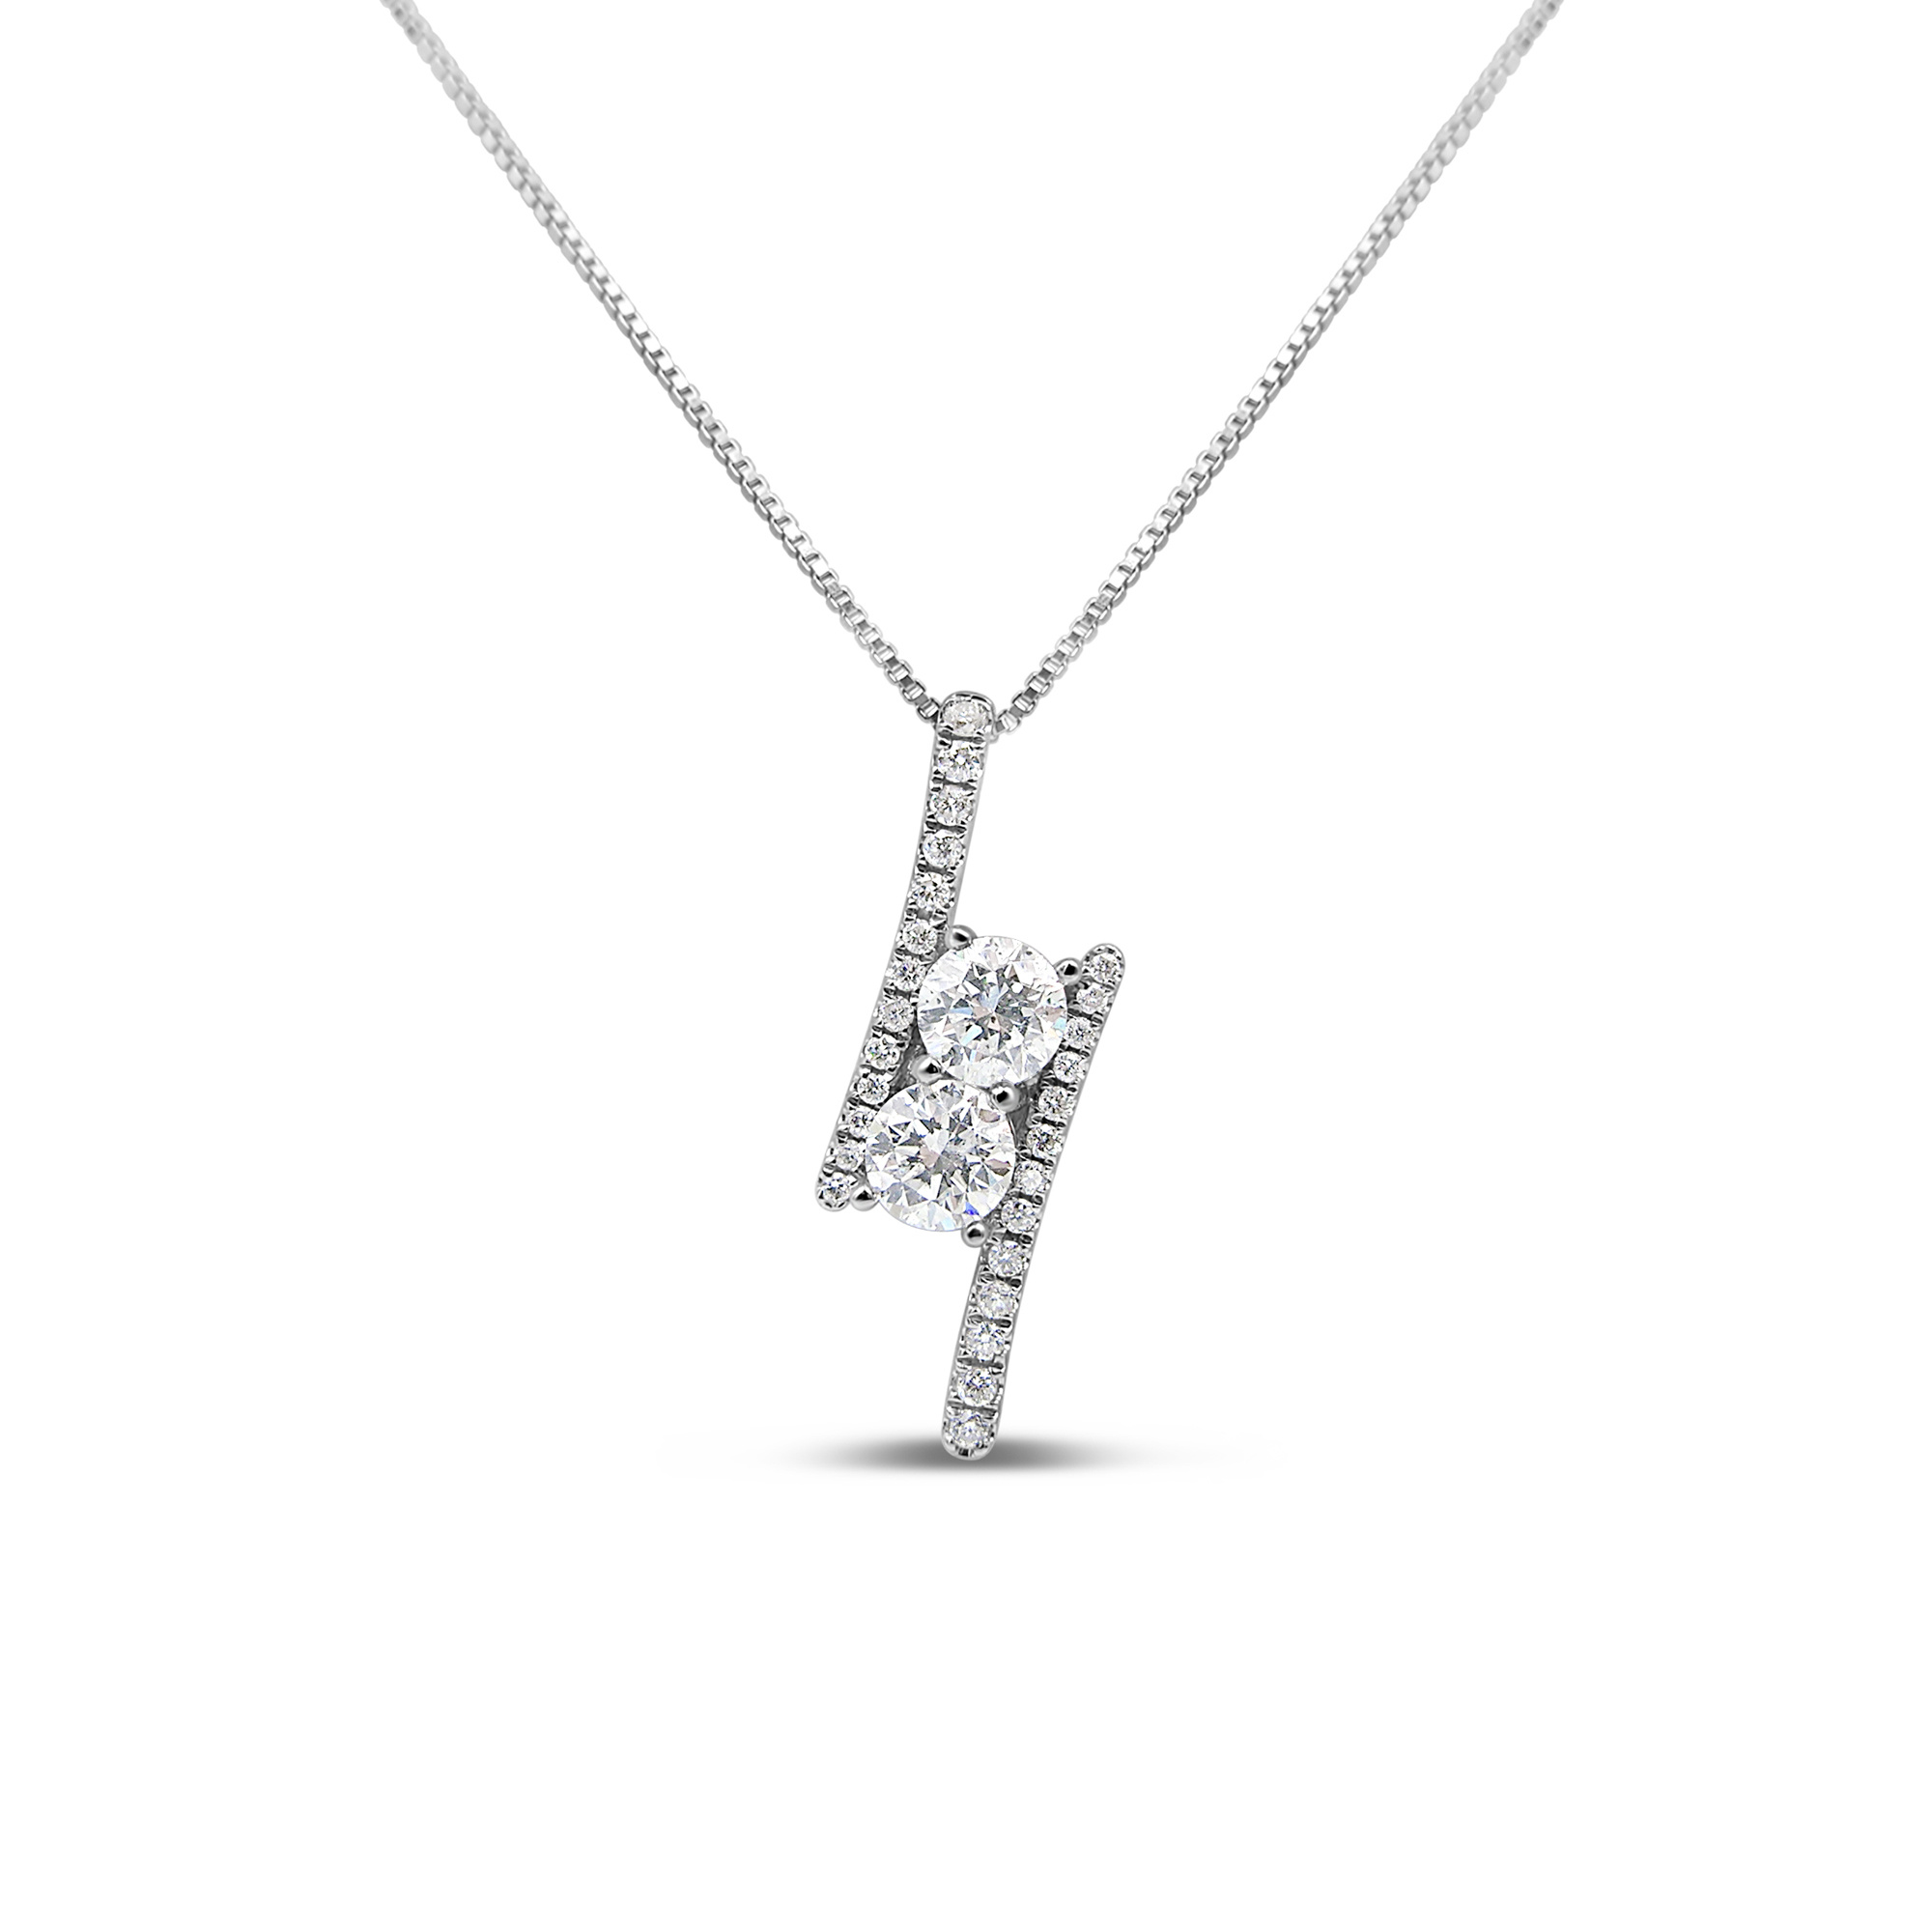 18kt white gold pendant with 0.60 ct diamonds